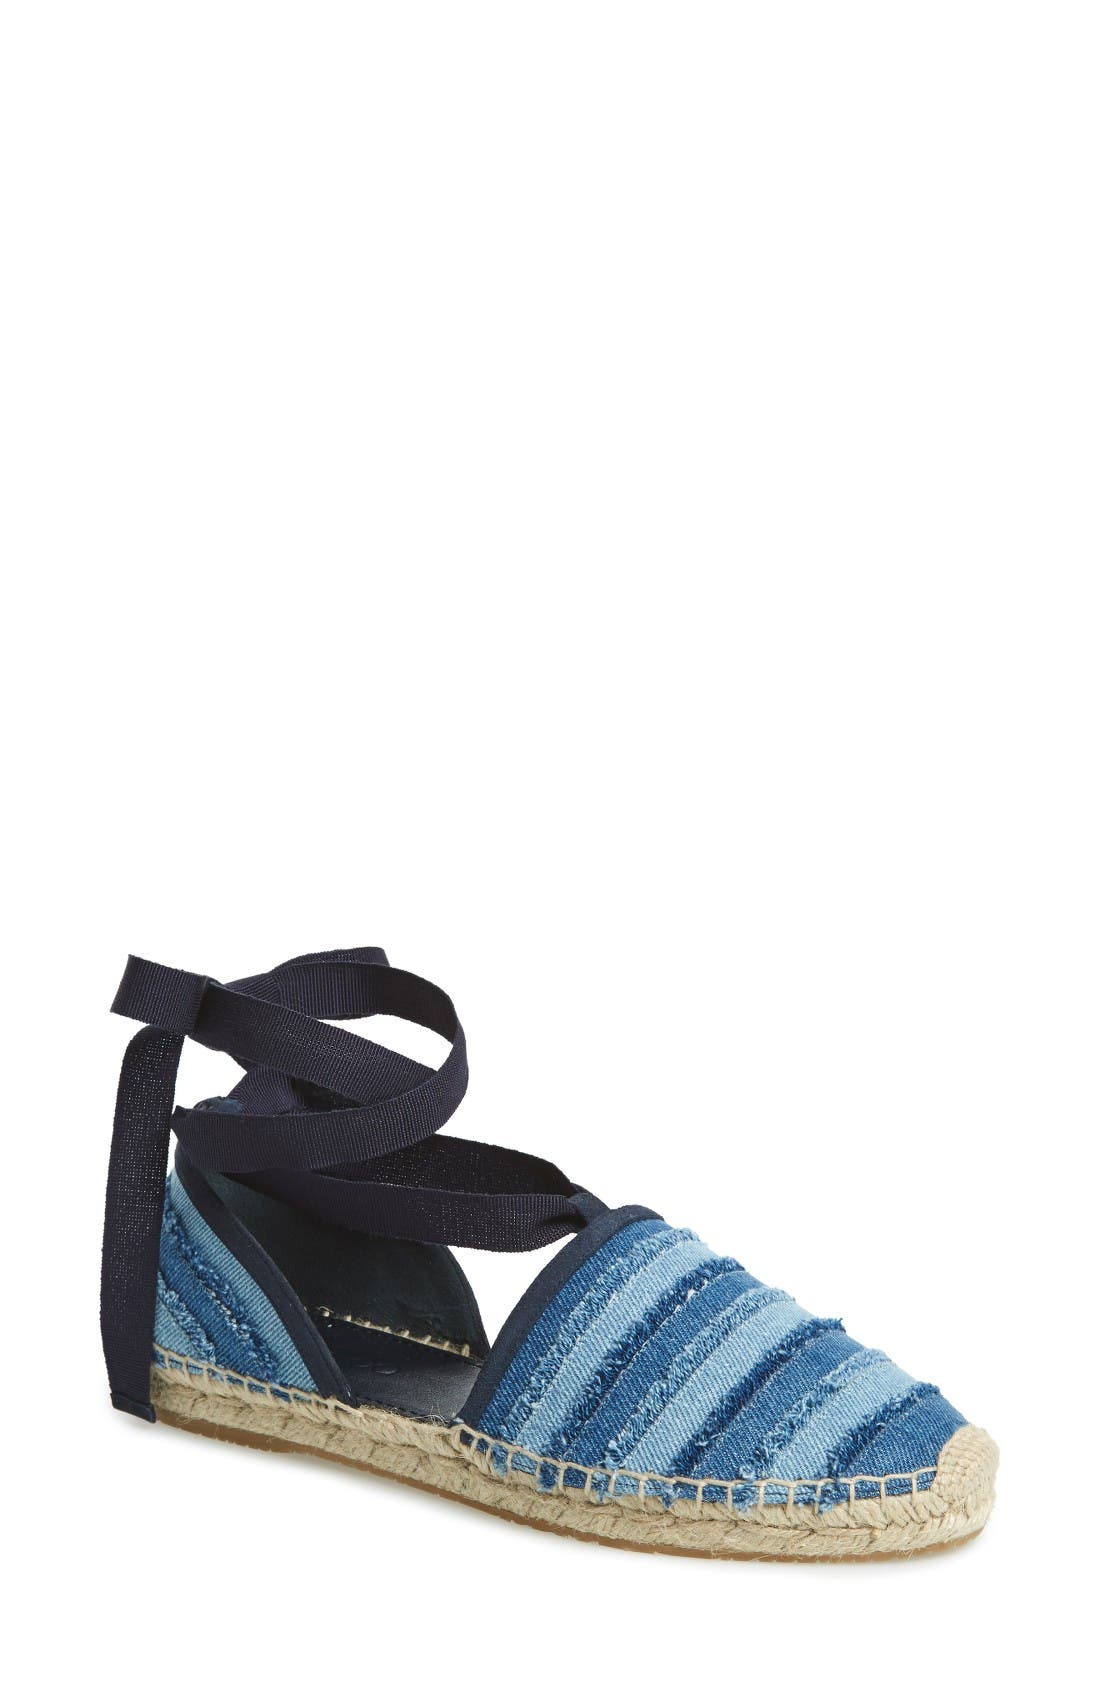 Alternate Image 1 Selected - Jimmy Choo Dolphin Espadrille Flat (Women)